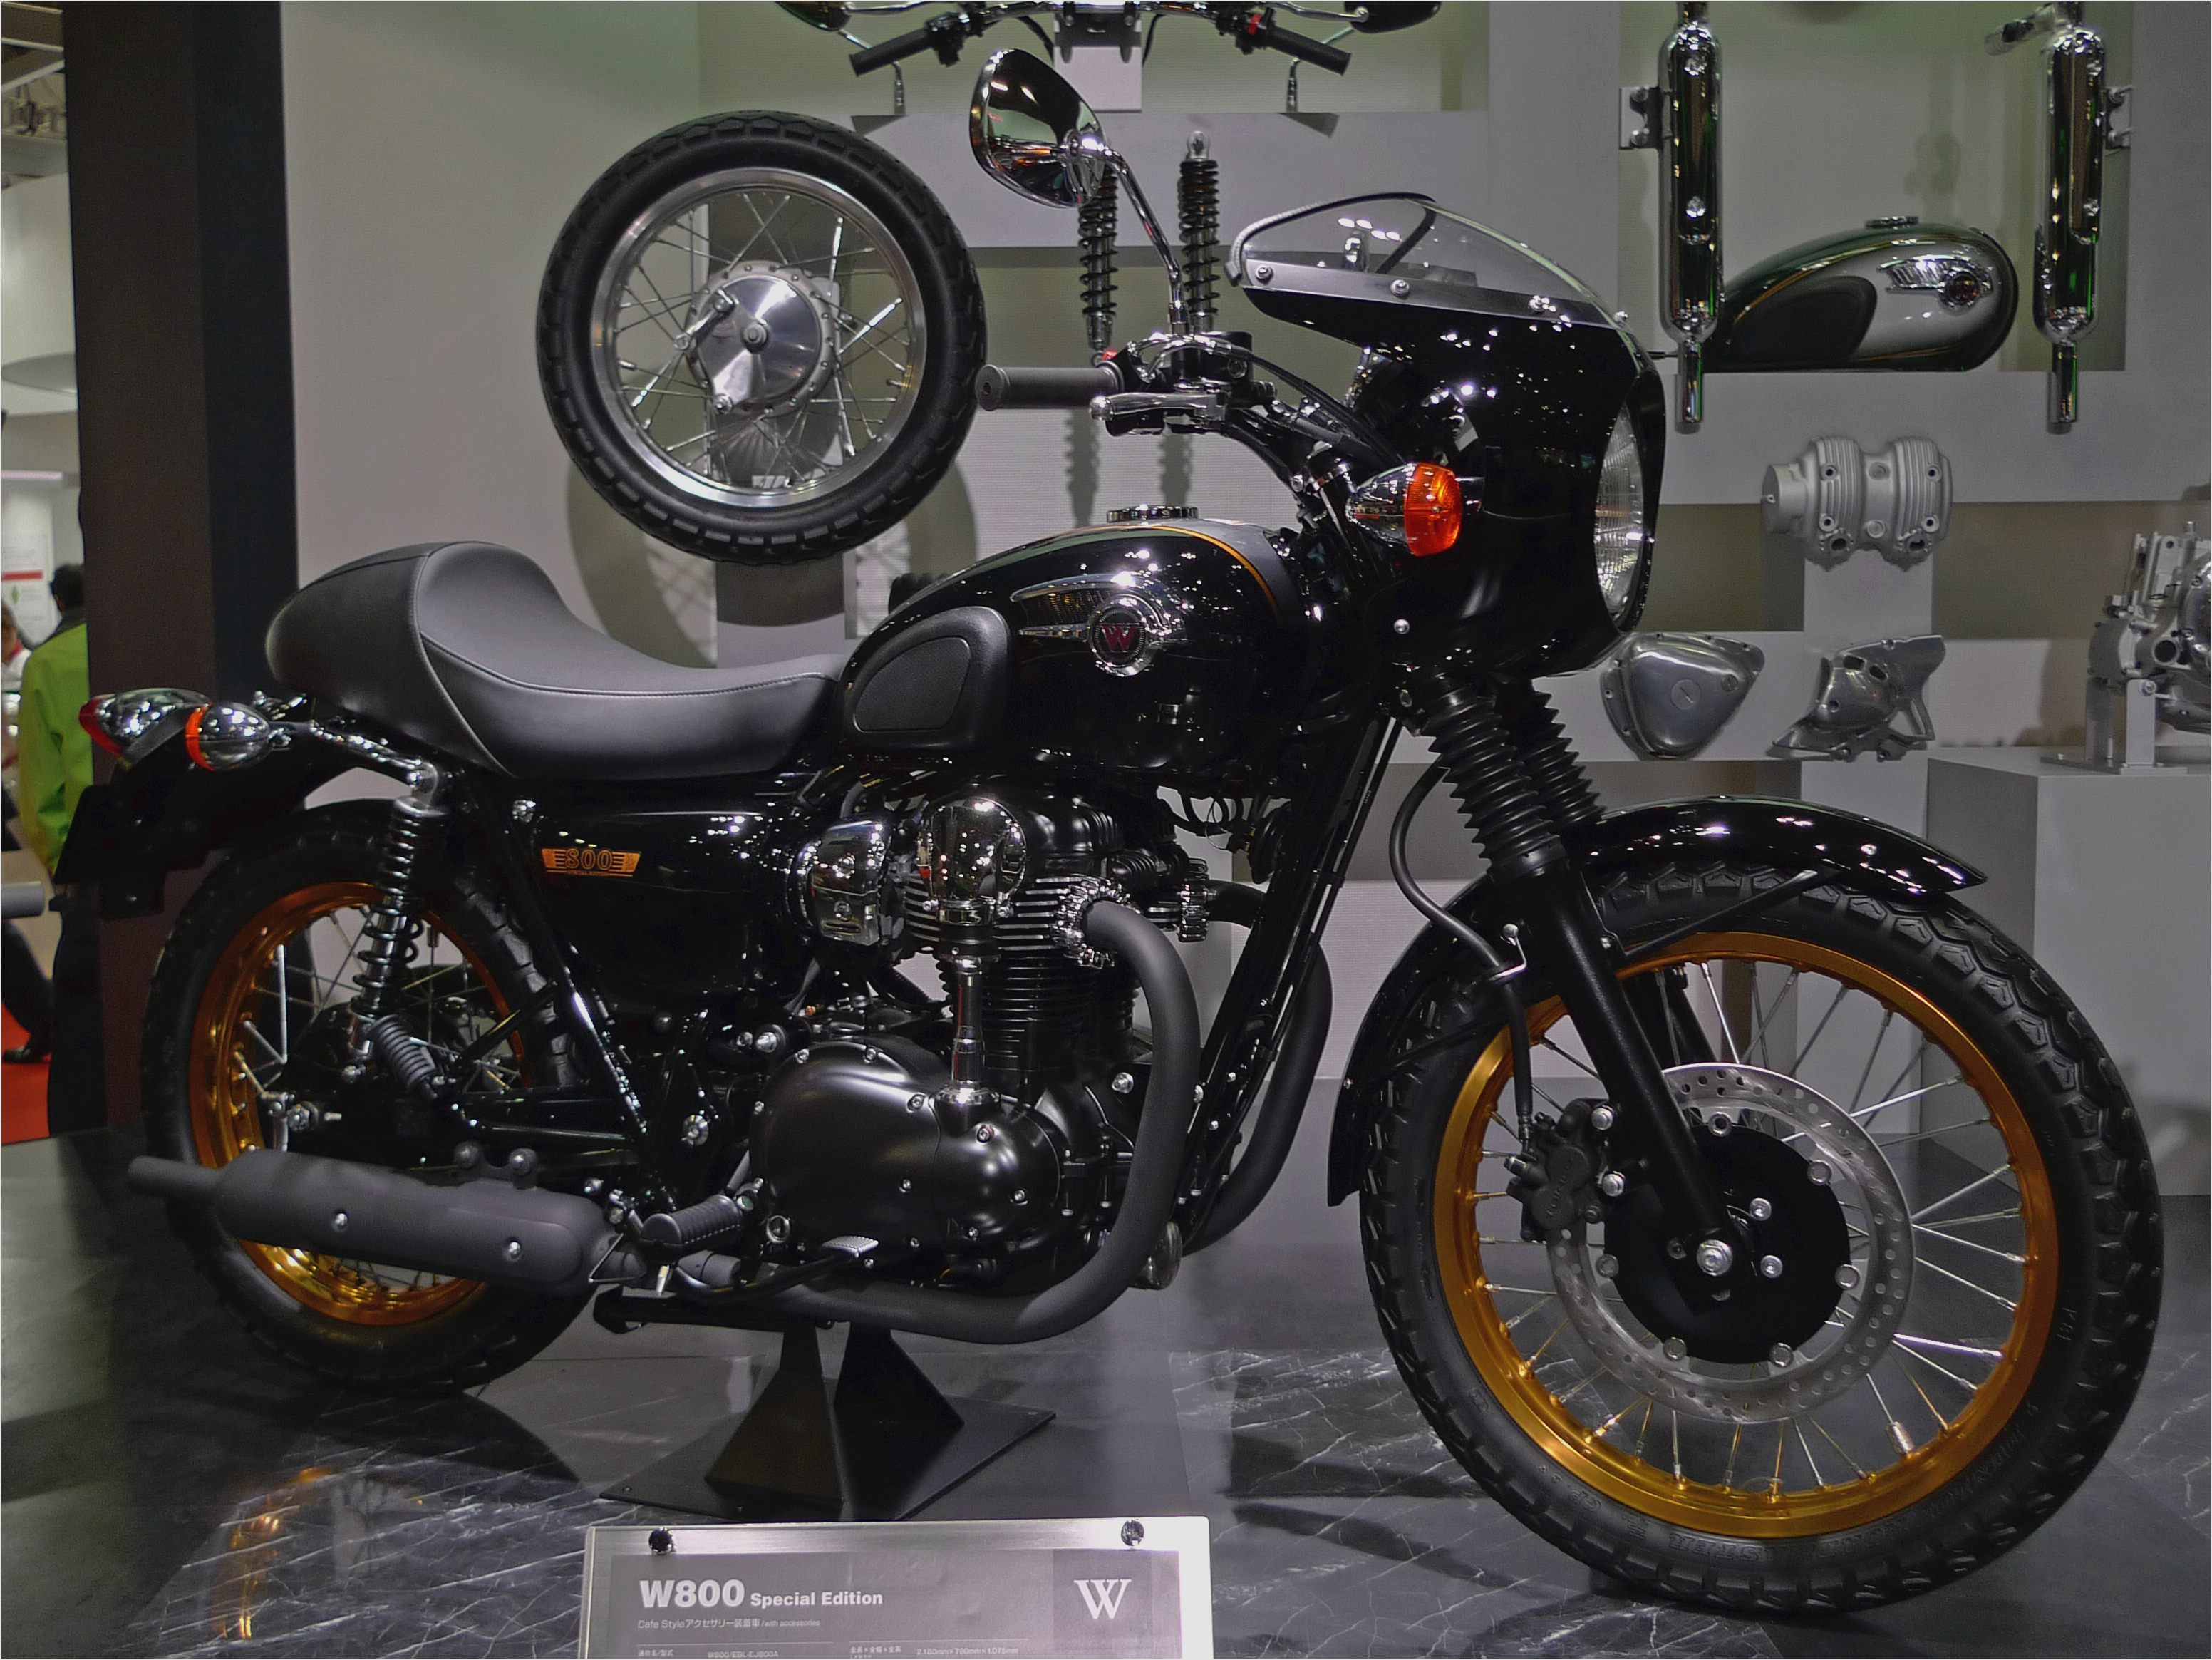 Kawasaki W800 Cafe Style images #86146